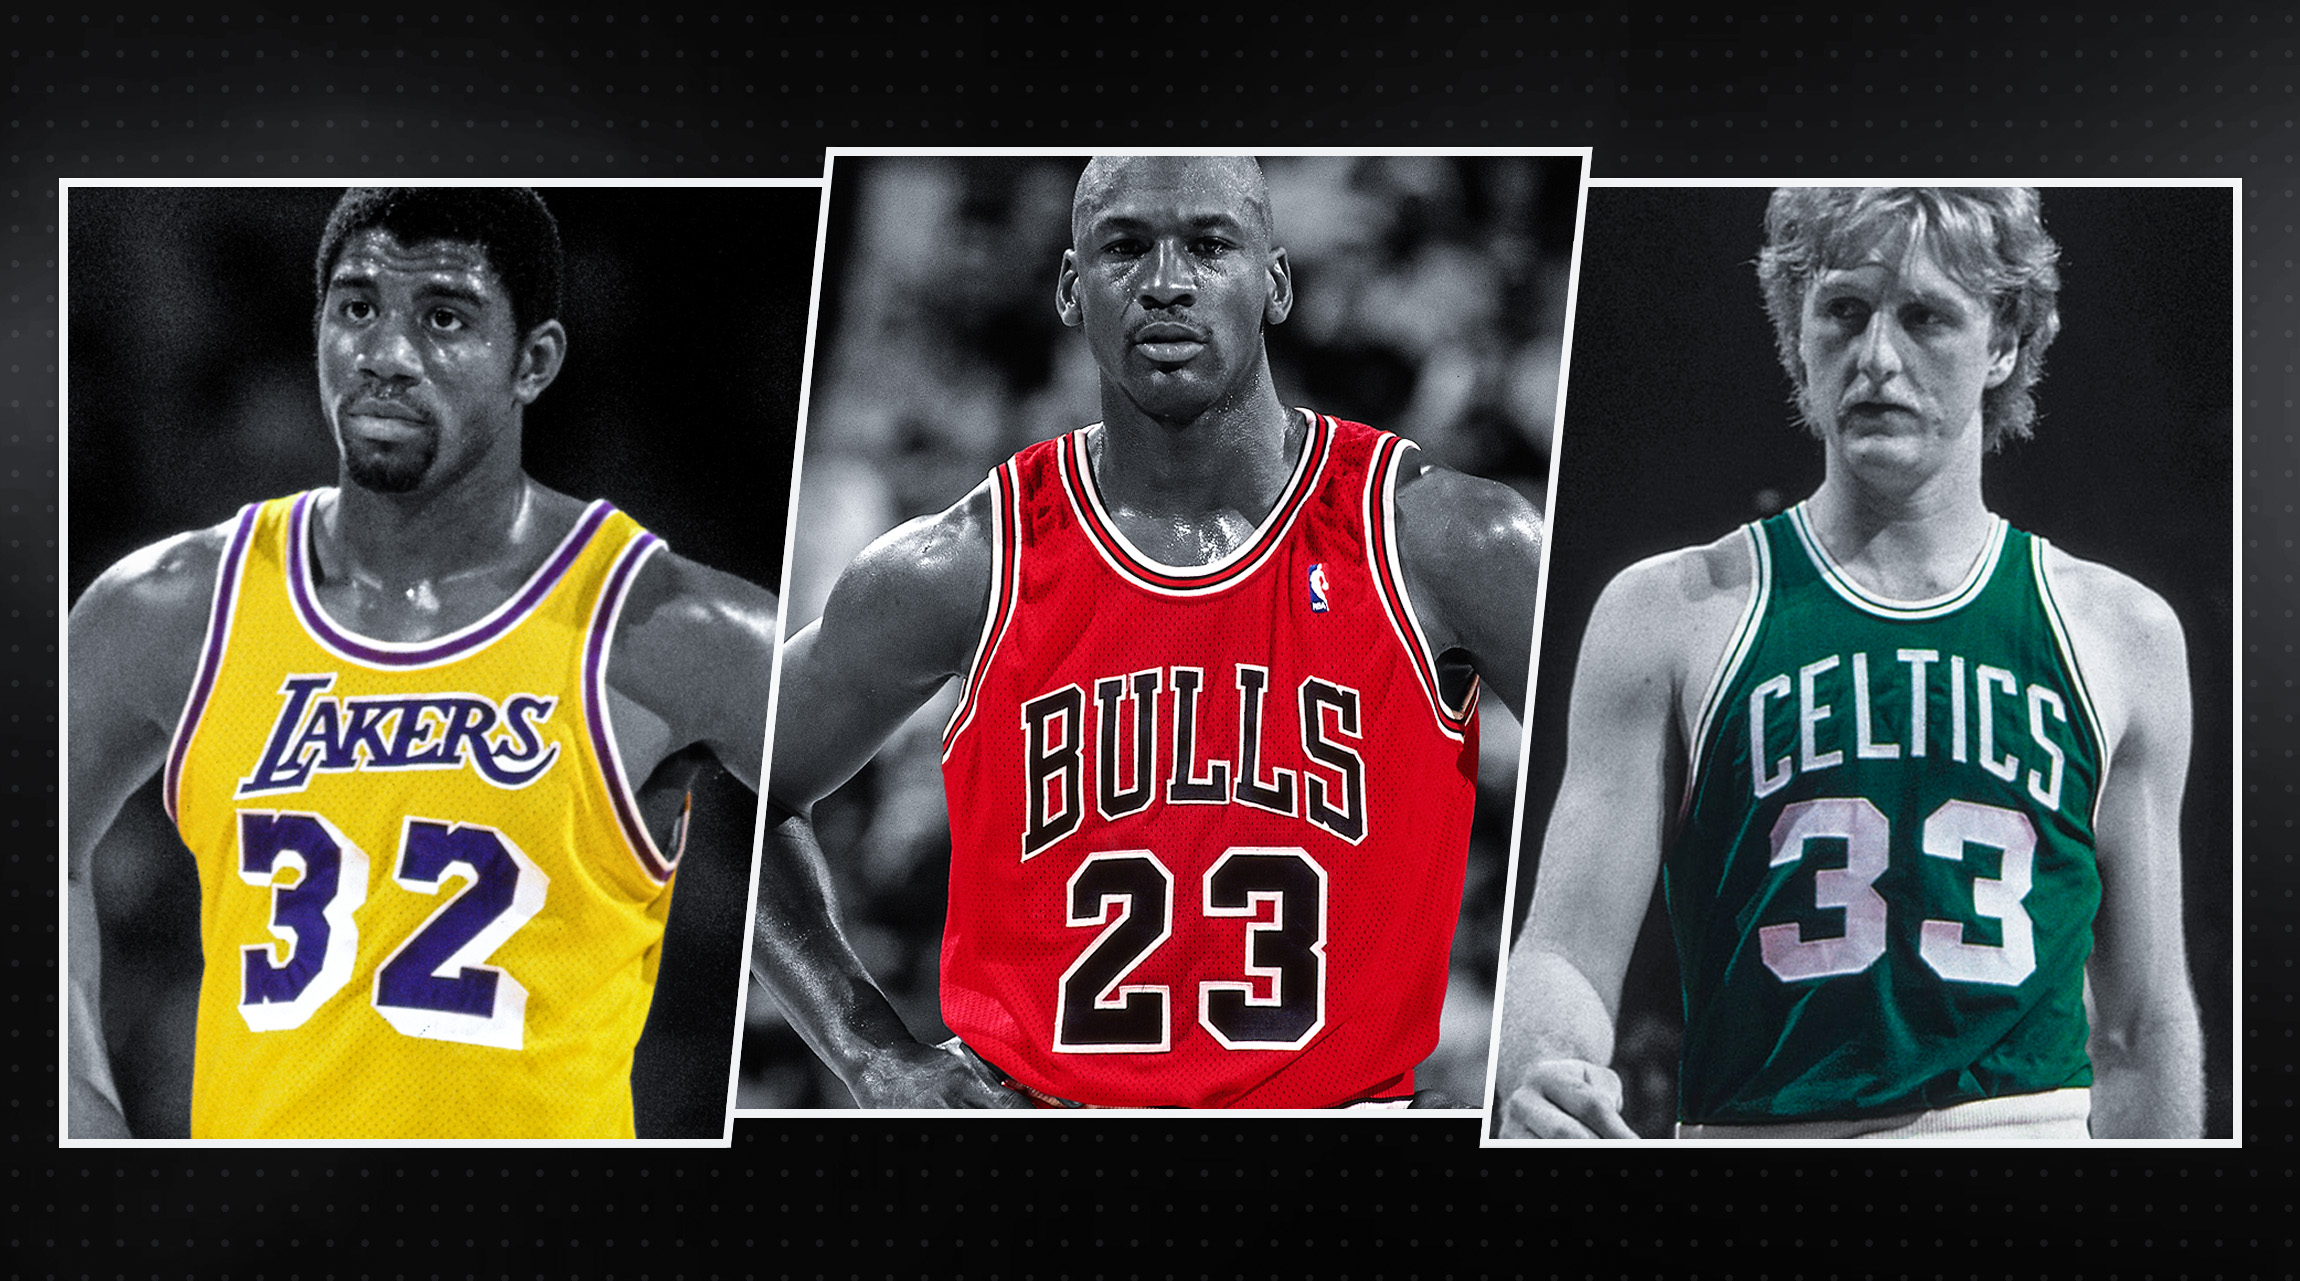 NBA's best jerseys